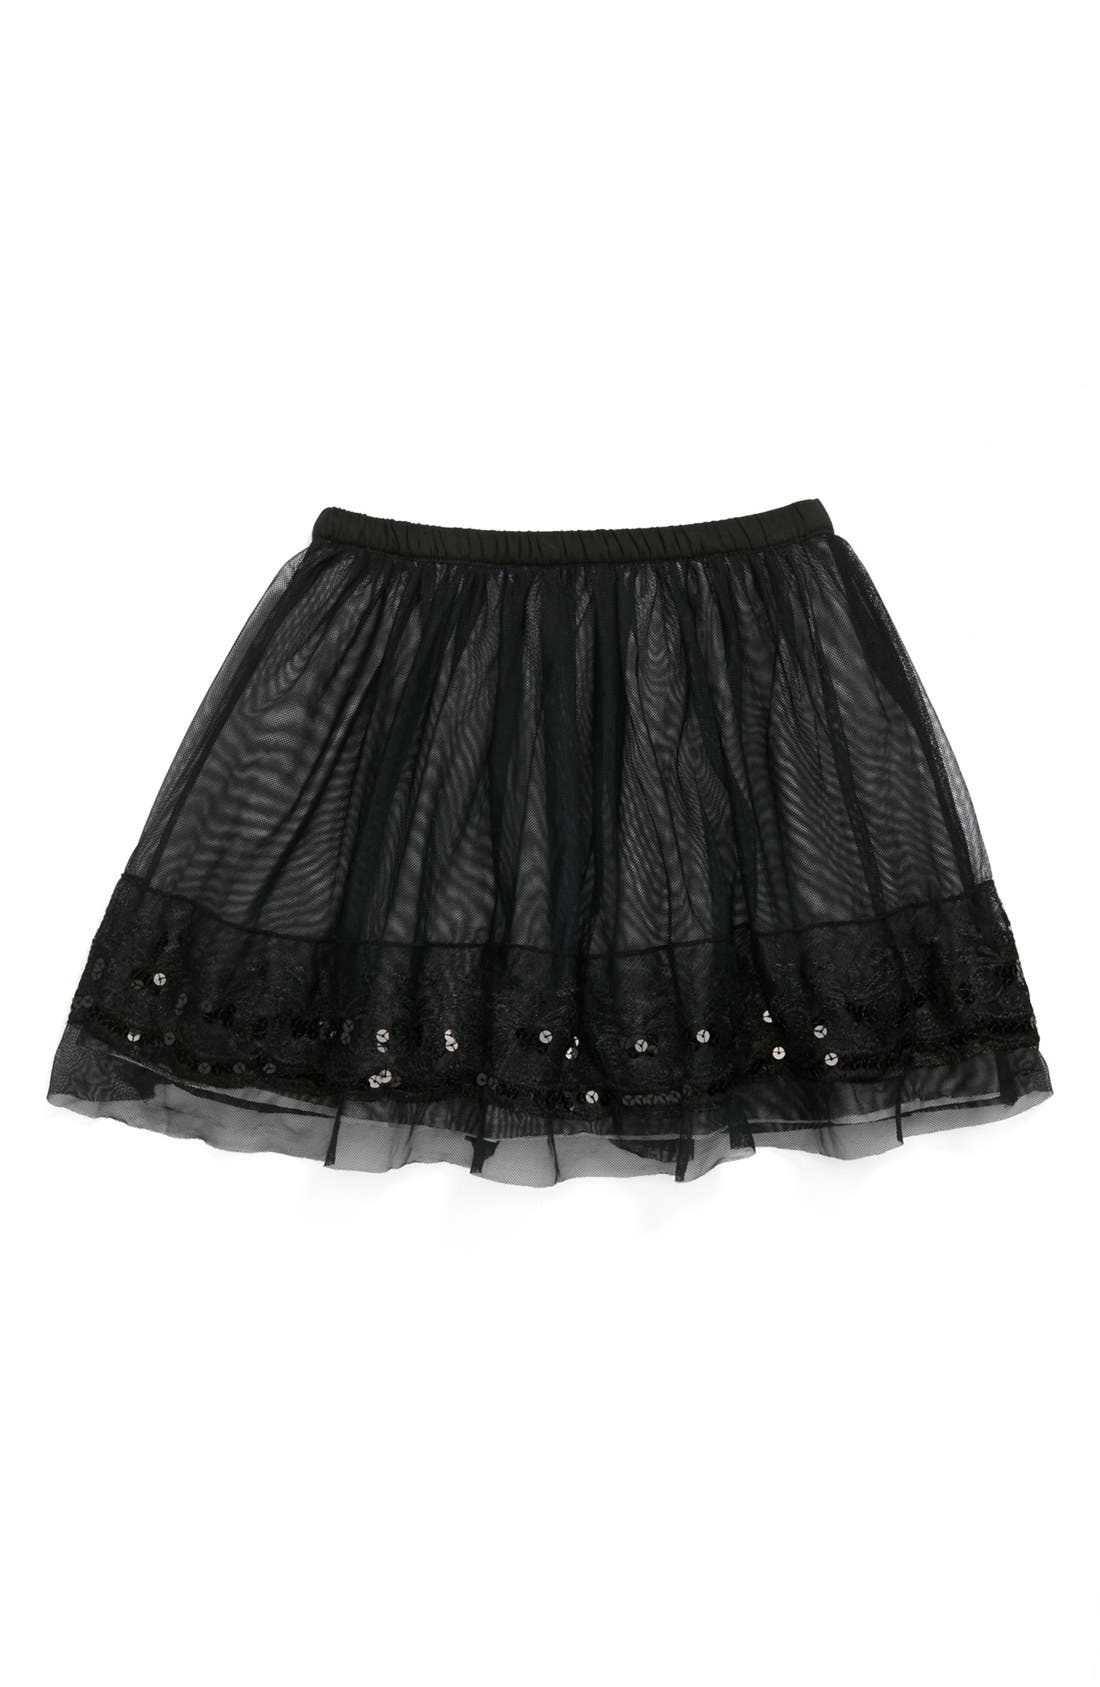 Alternate Image 1 Selected - Penny Candy 'Icicle' Skirt (Little Girls & Big Girls)